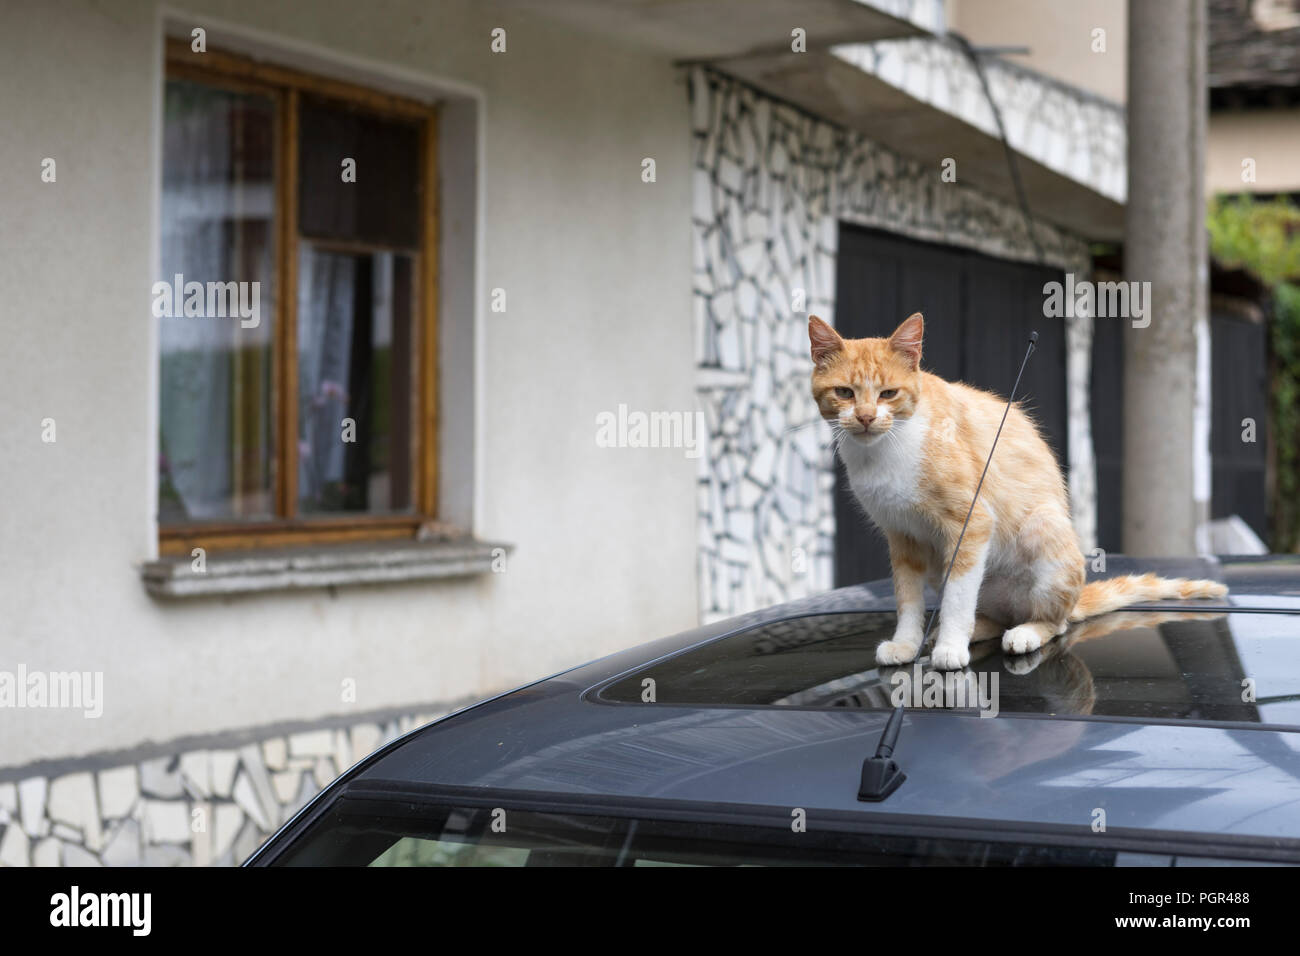 Cat sitting on the rooftop of a car - Stock Image